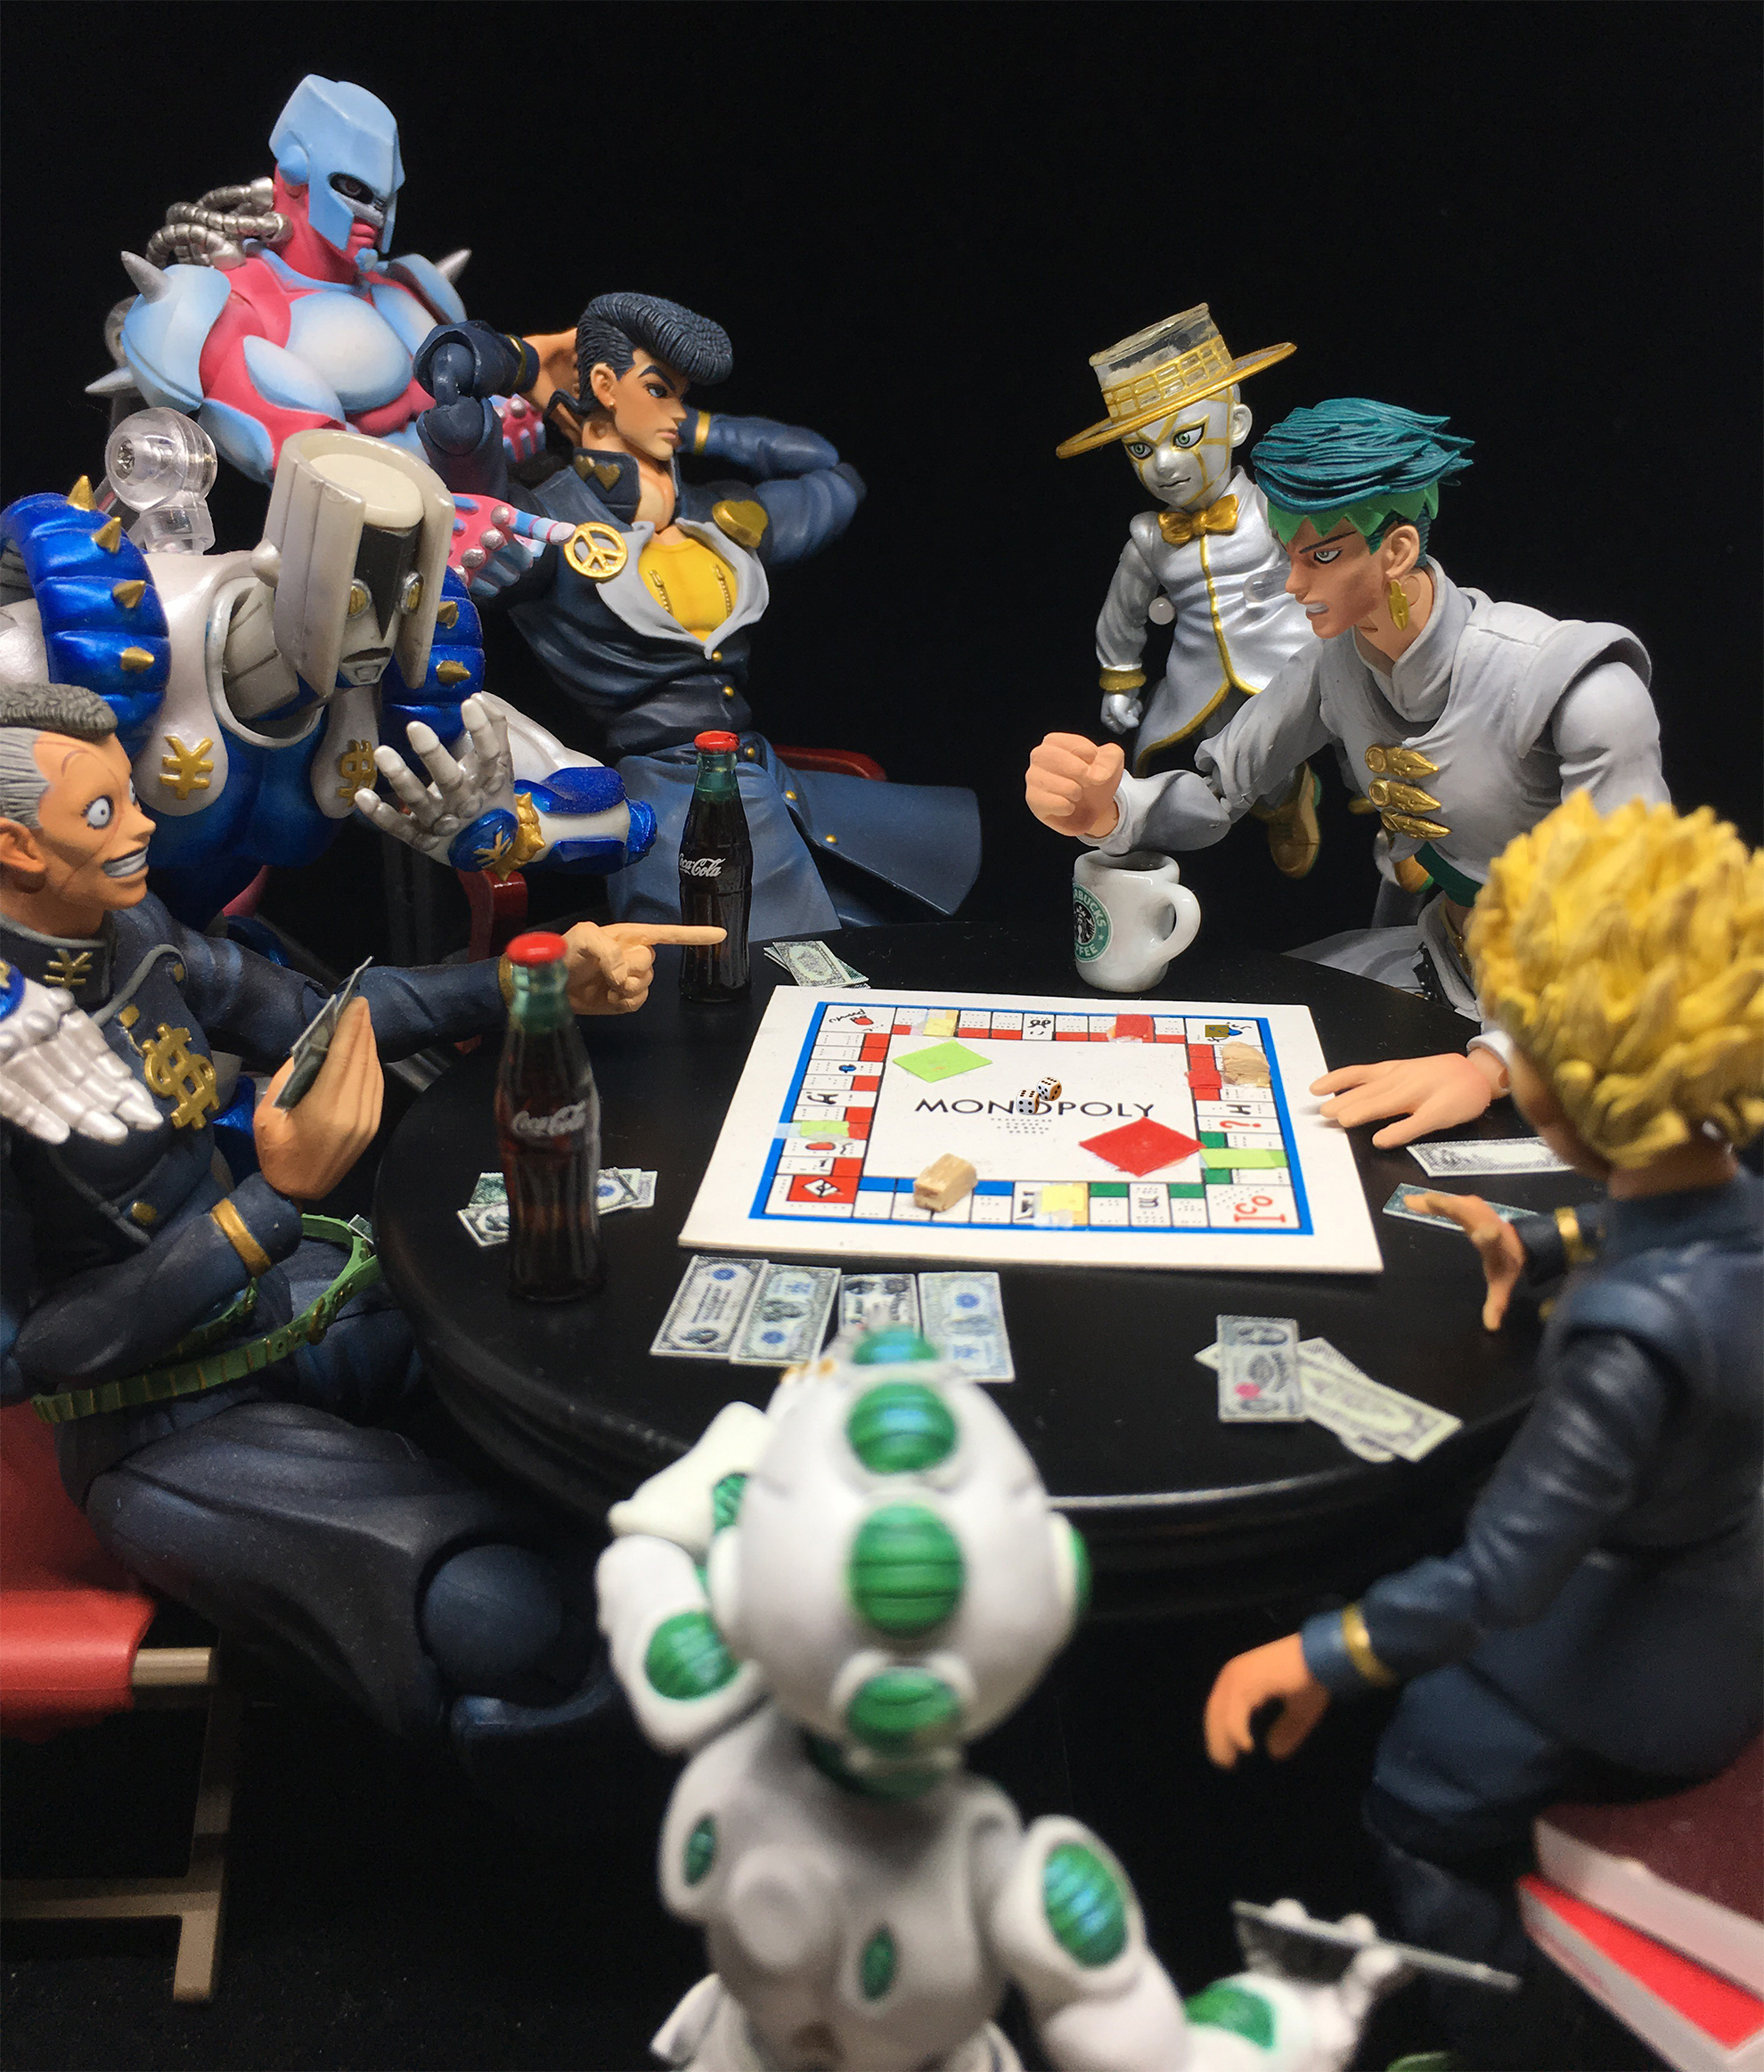 super_action_statue shueisha jojo_no_kimyou_na_bouken medicos_entertainment progress araki_hirohiko higashikata_josuke kishibe_rohan crazy_diamond hirose_koichi echoes_act_1 the_hand echoes_act_3 echoes_act_2 nijimura_okuyasu heaven's_door lucky_land_communications diamond_wa_kudakenai